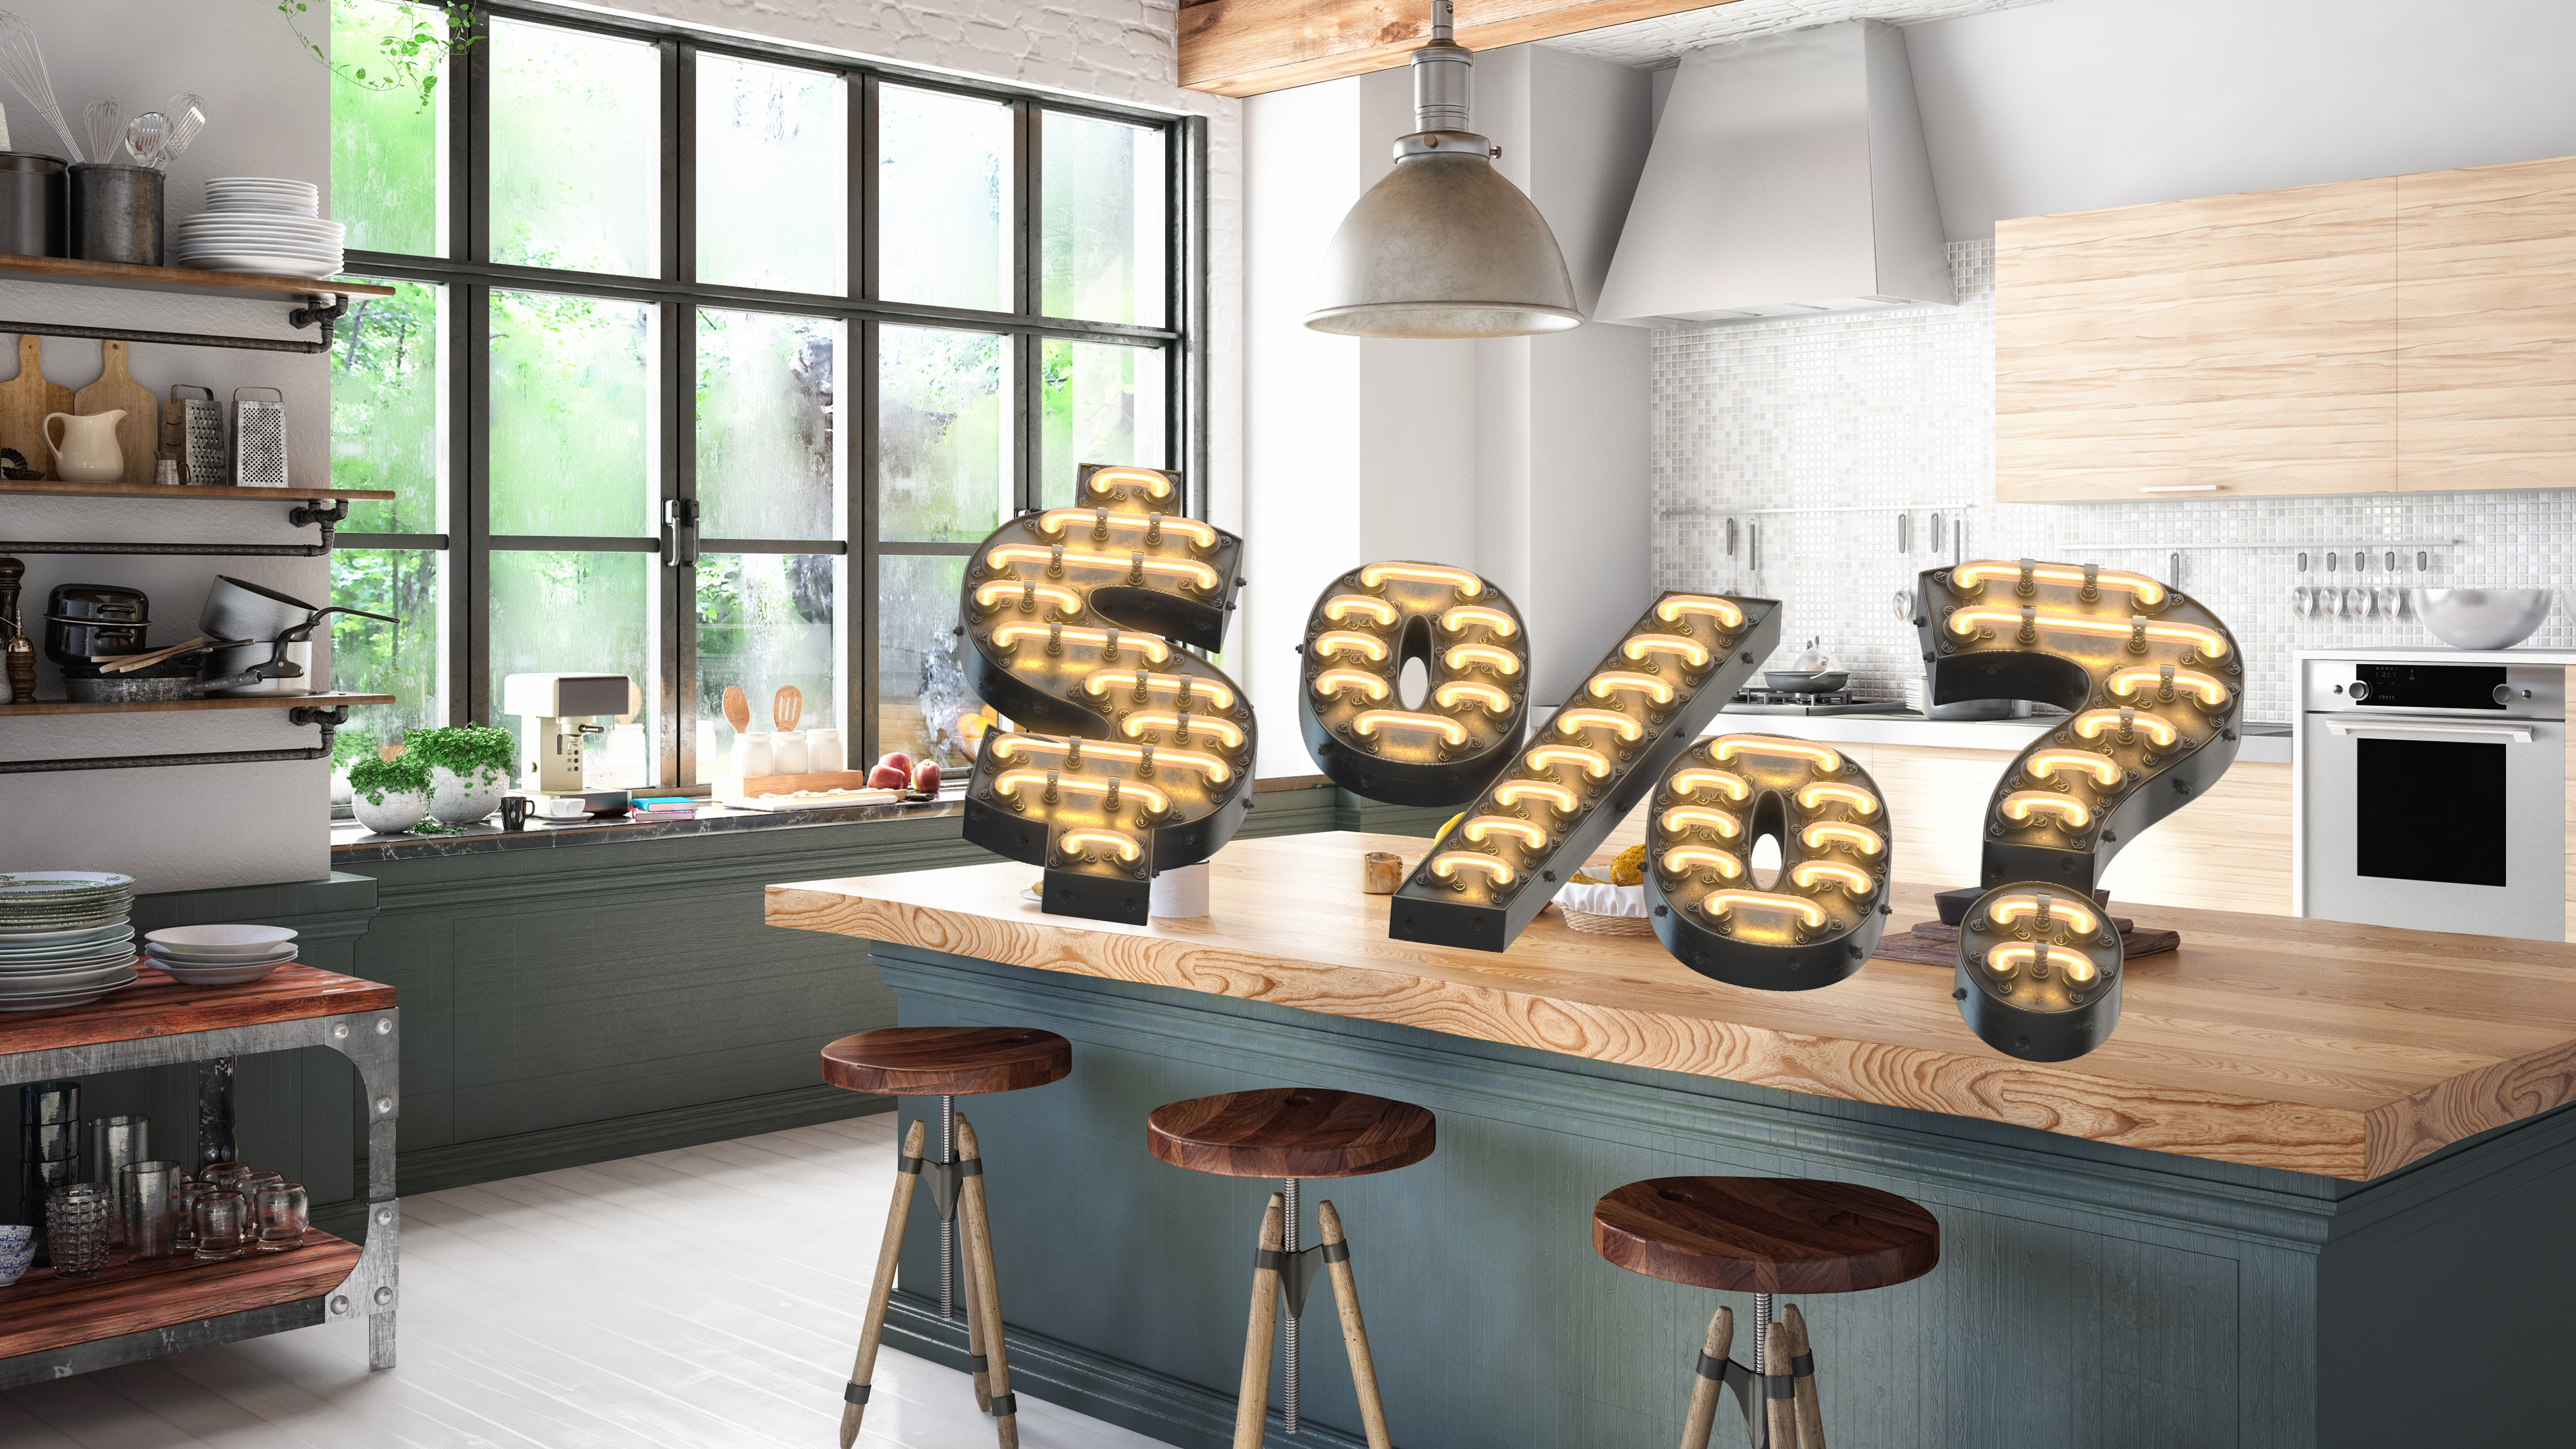 Kitchen Remodel Costs: How Much to Spend on Your Renovation ...